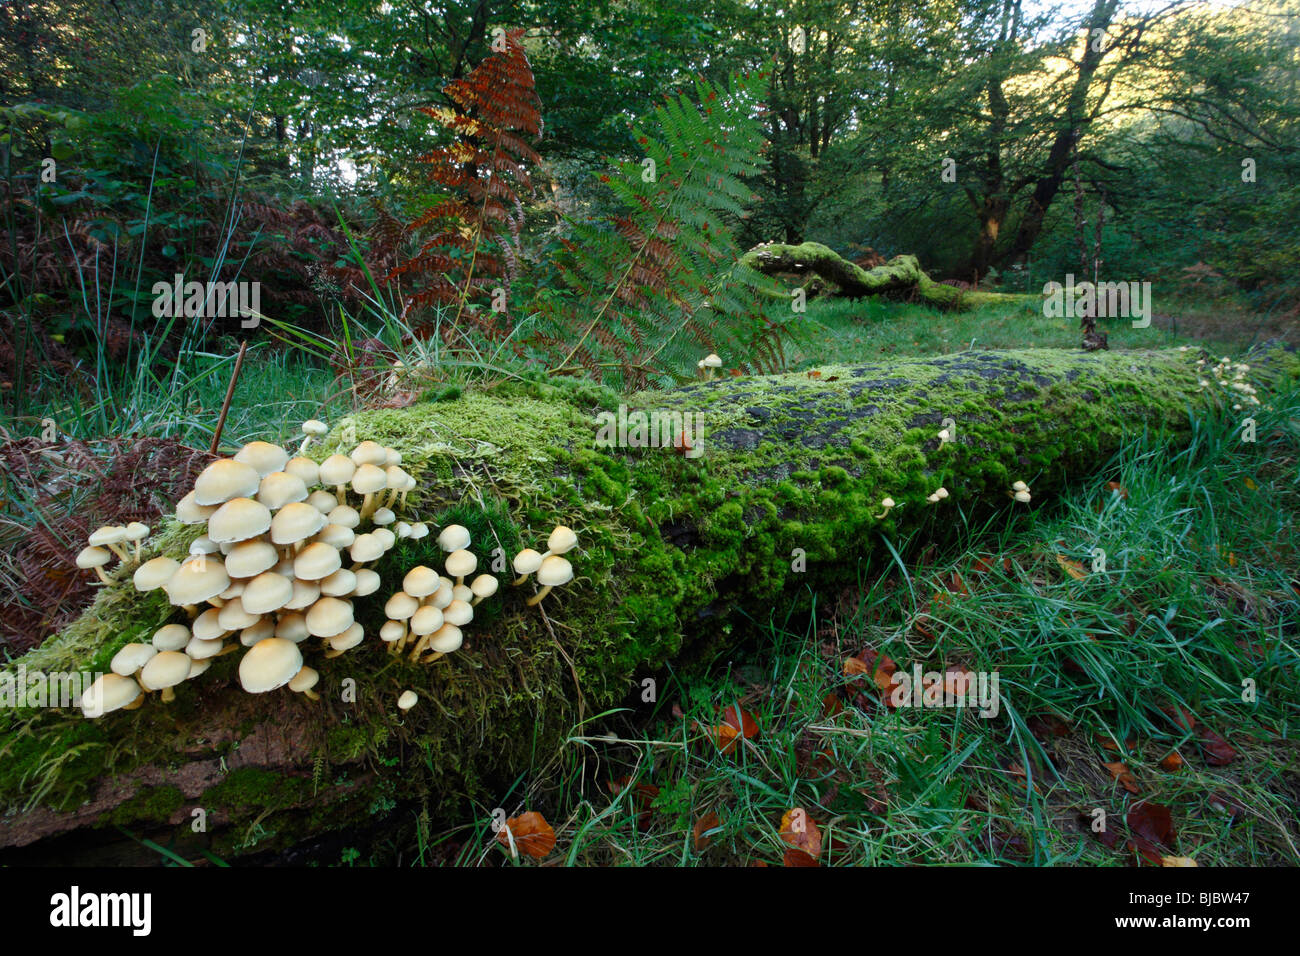 Sulphur Tuft Fungi (Hypholoma fasciculare), growing on decaying tree stems in forest, Germany - Stock Image